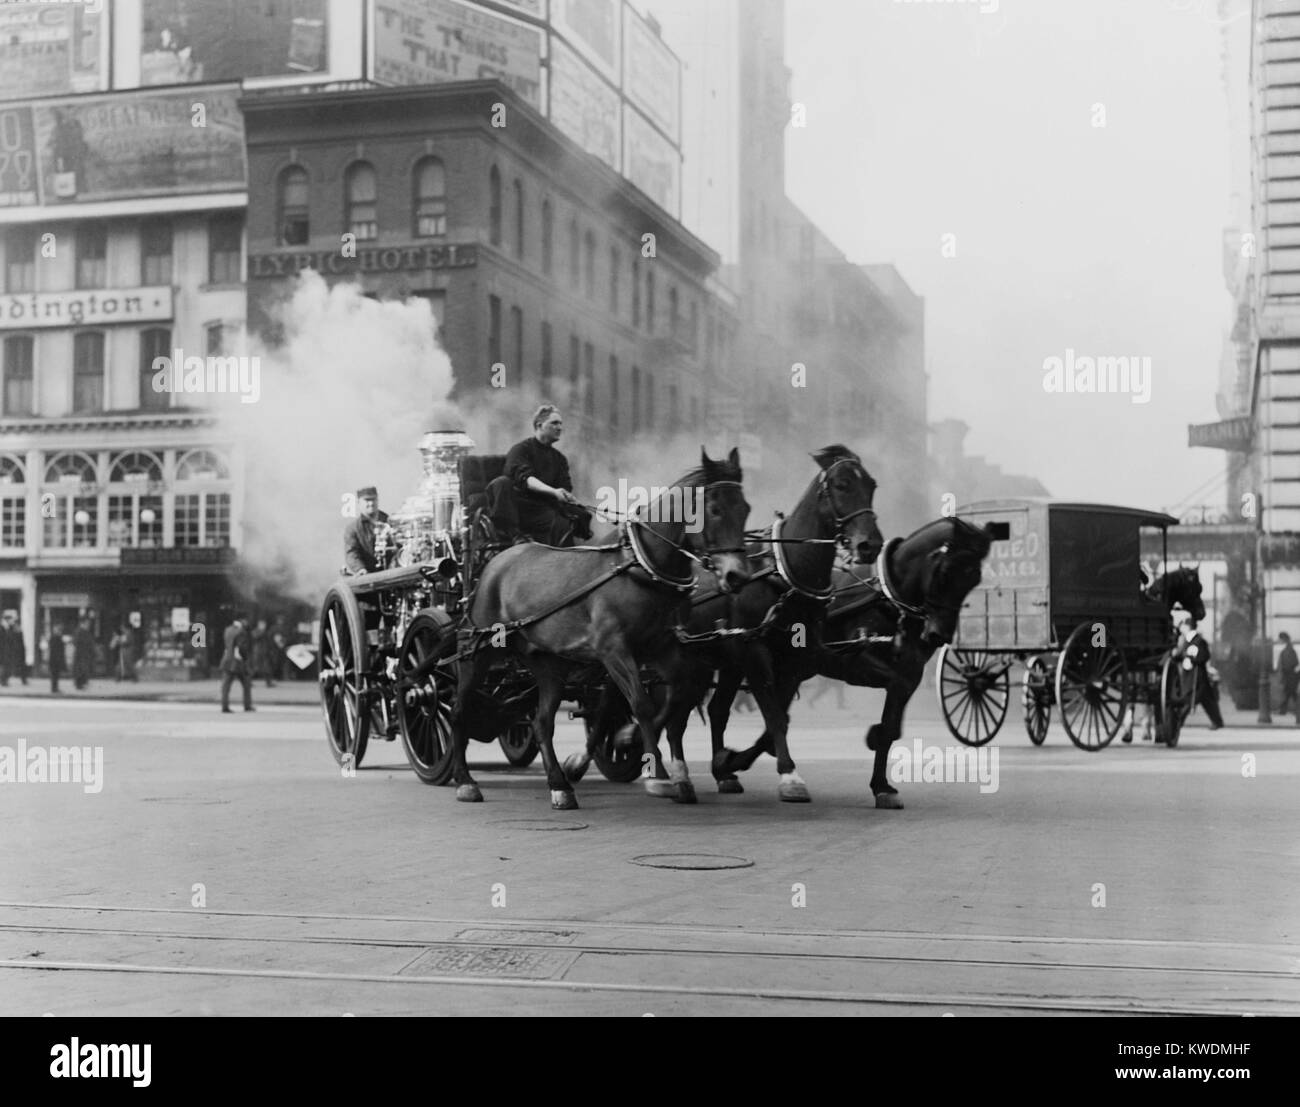 Horse drawn fire engine speeds on West 43rd Street and Broadway, NYC, 1910-15. The steam is from the engines boiler - Stock Image